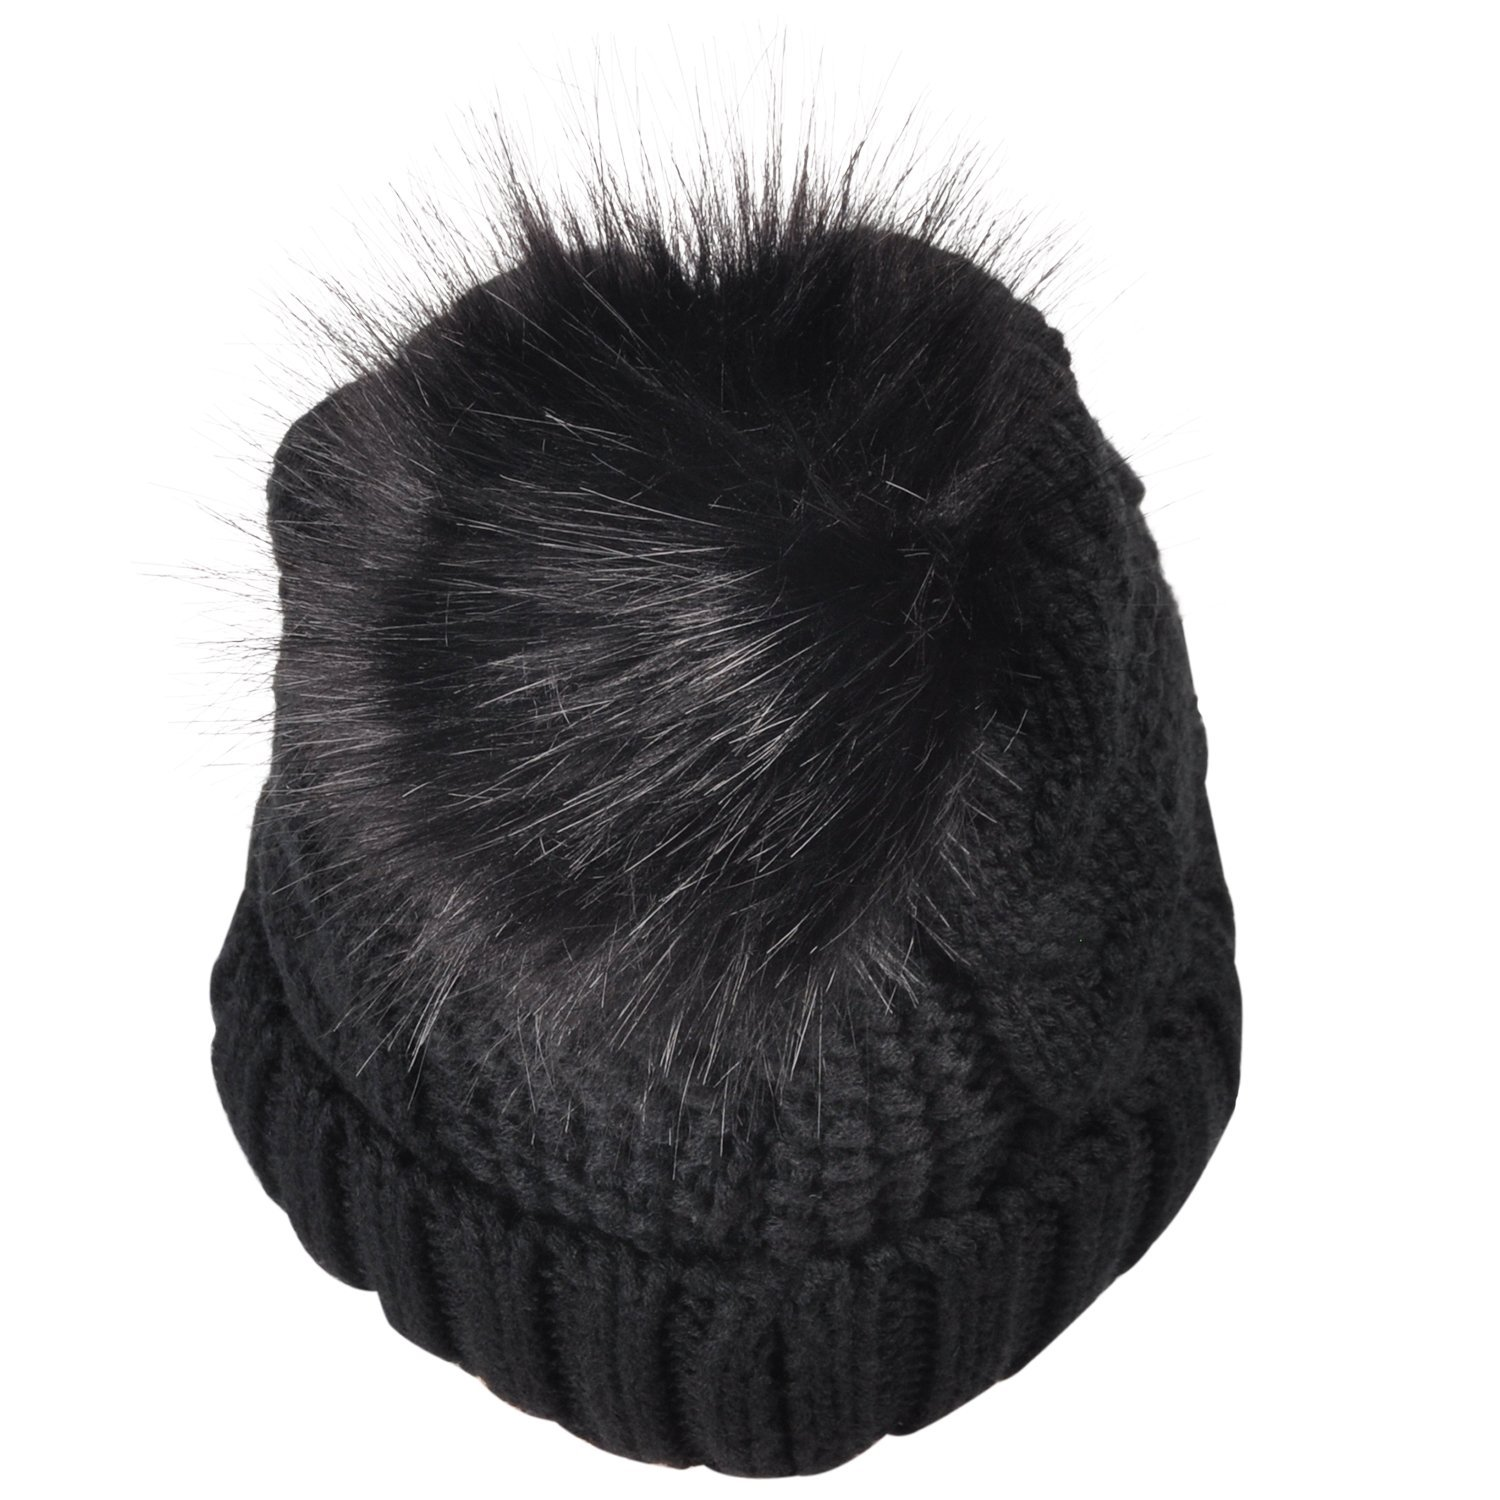 ca638a4c2bb Winter Knit Hat w  Faux Fur Pom Pom Cuff Beanie Skull Ski Cap for Women    Men Black - 1SLWH100BK   Skullies   Beanies   Clothing